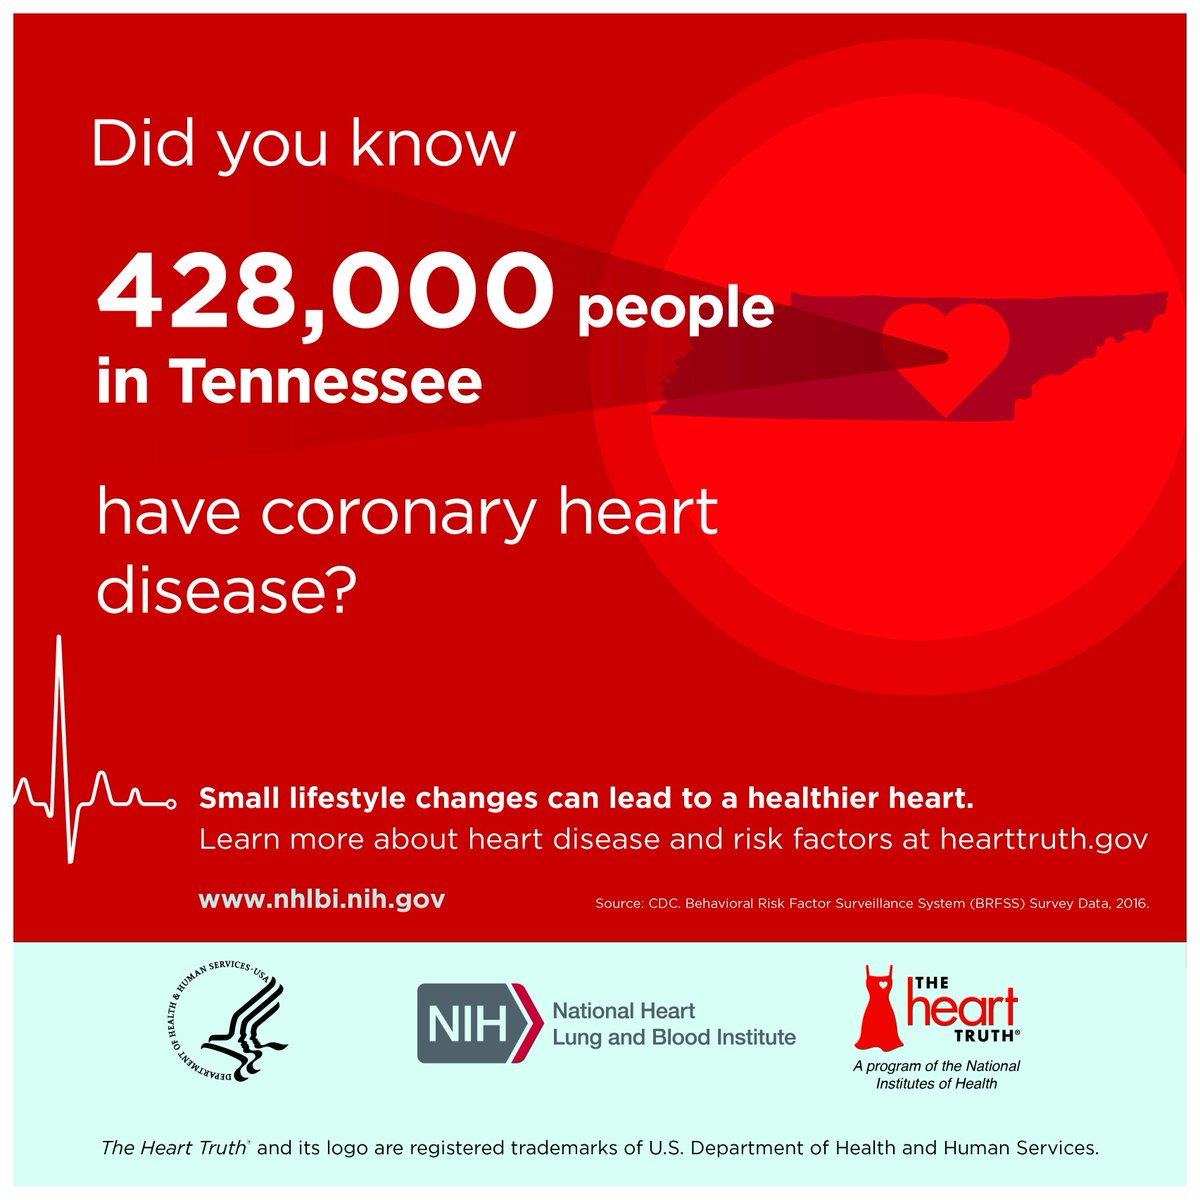 Did you know that heart disease is the leading cause of death in the U.S.? #MovewithHeart https://t.co/XGIAje44Ne https://t.co/hb5r7vXQCh